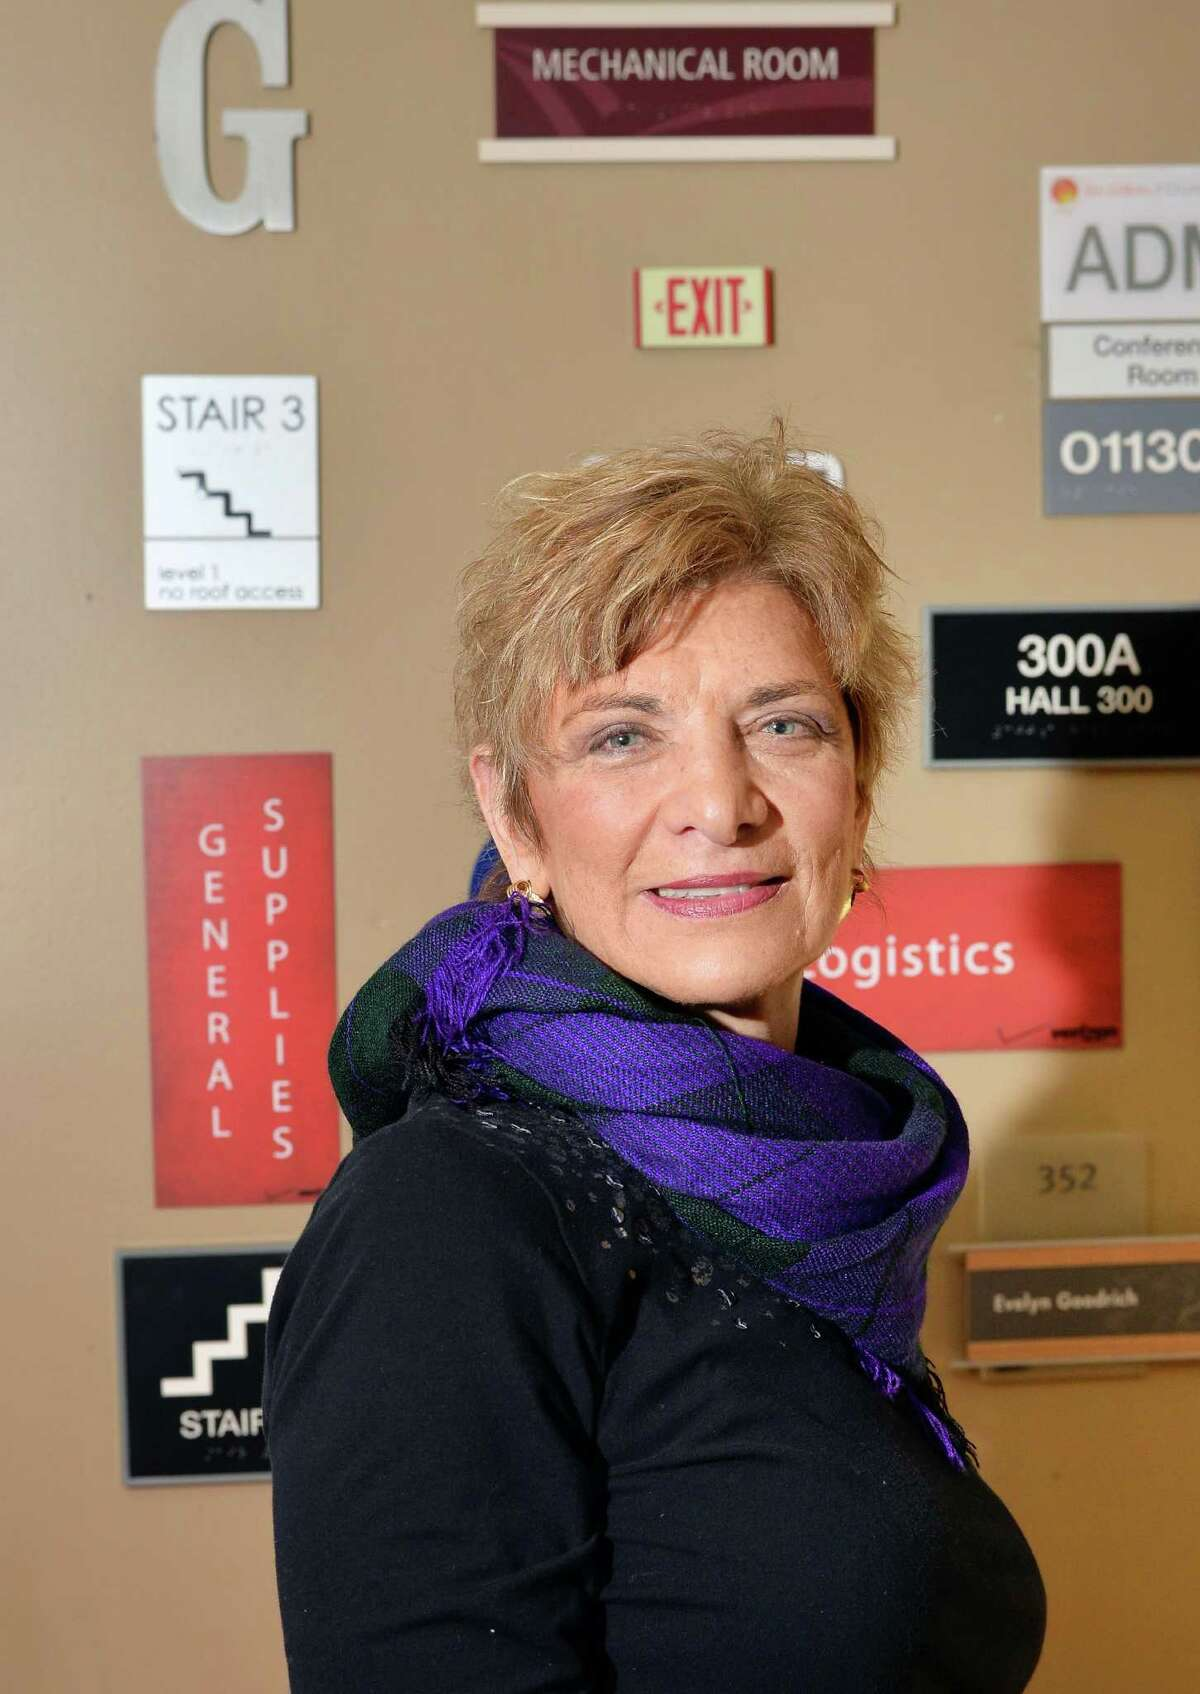 Lorraine Martin, owner of M3 Signs Plus, in her office Wednesday Nov. 18, 2015 in Slingerlands, NY. (John Carl D'Annibale / Times Union)